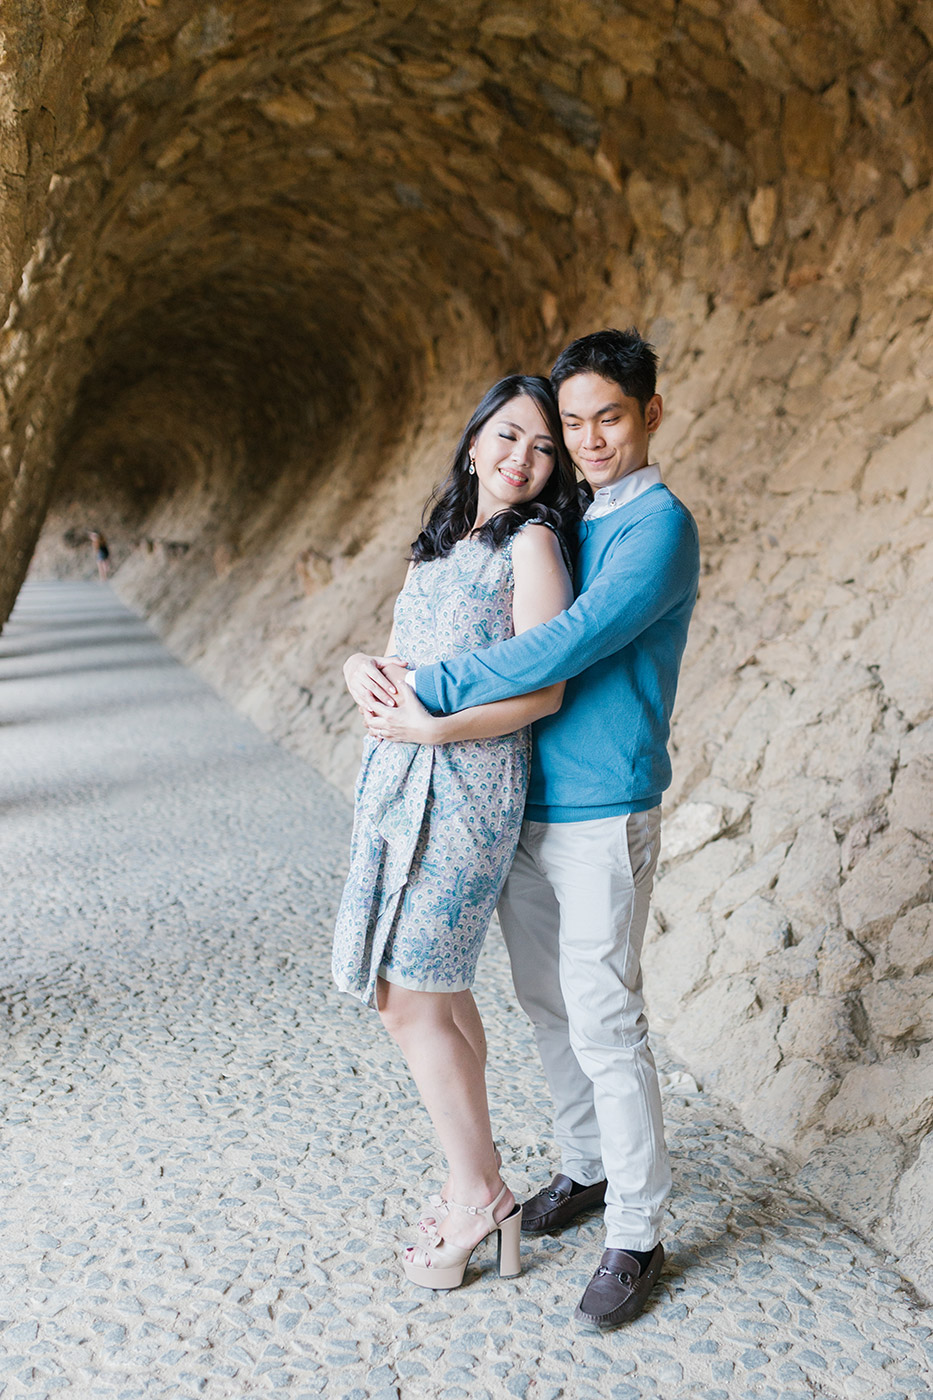 Beautiful young couple | Fine Art Photographer | Lena Karelova Photography | Engagement Photographer Barcelona